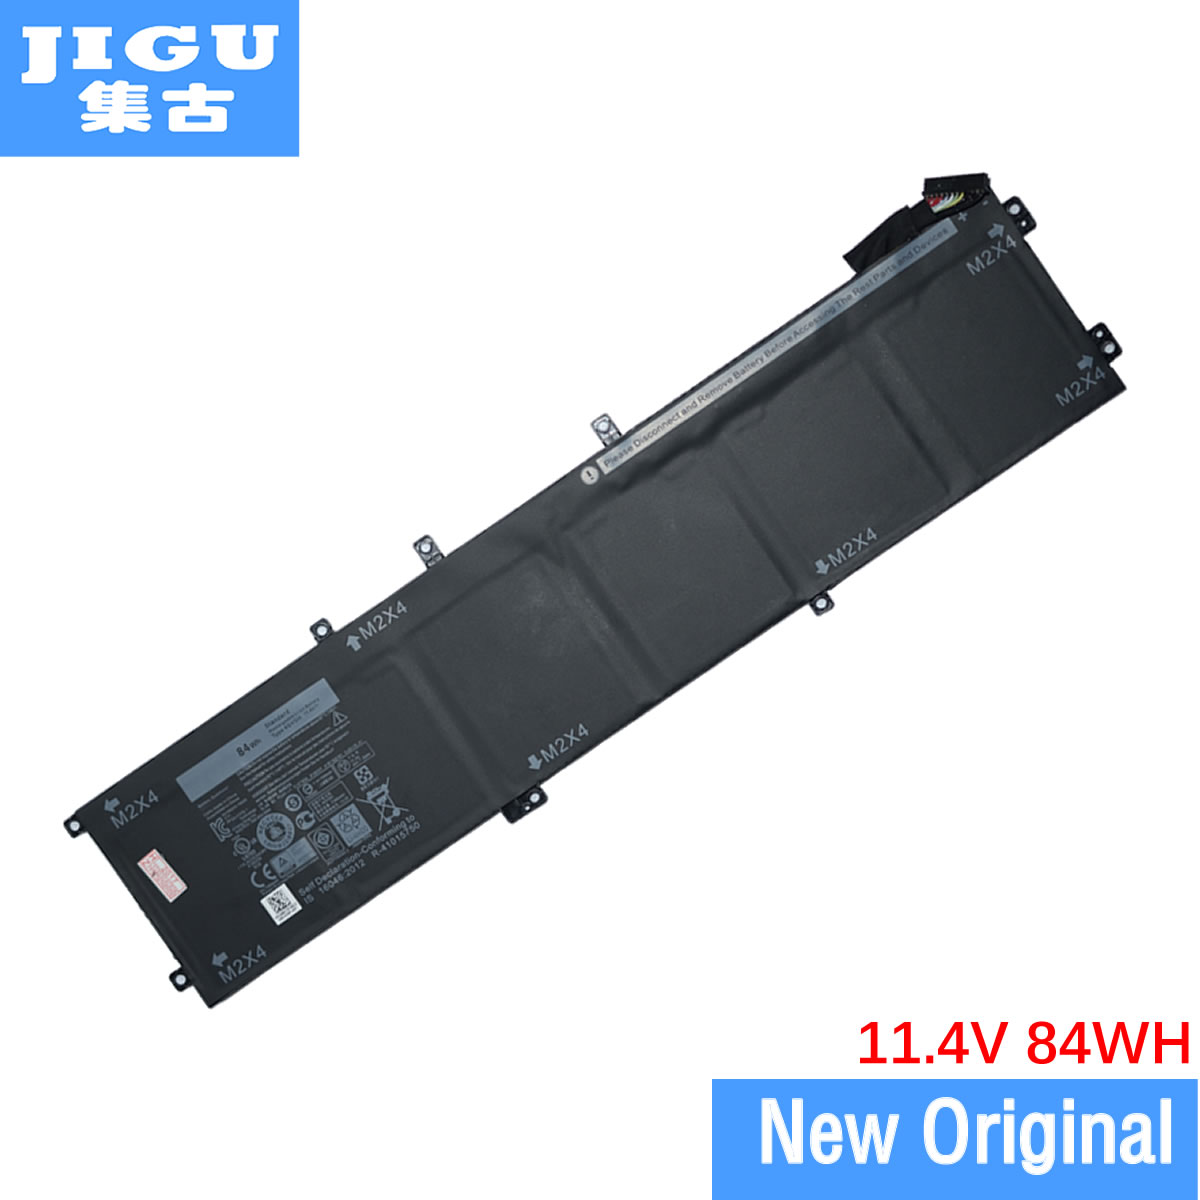 JIGU 11.4V 84WH Original Laptop Battery 1P6KD 4GVGH RRCGW For DELL For Precision 5510 XPS 15 9550 XPS15 9550 image